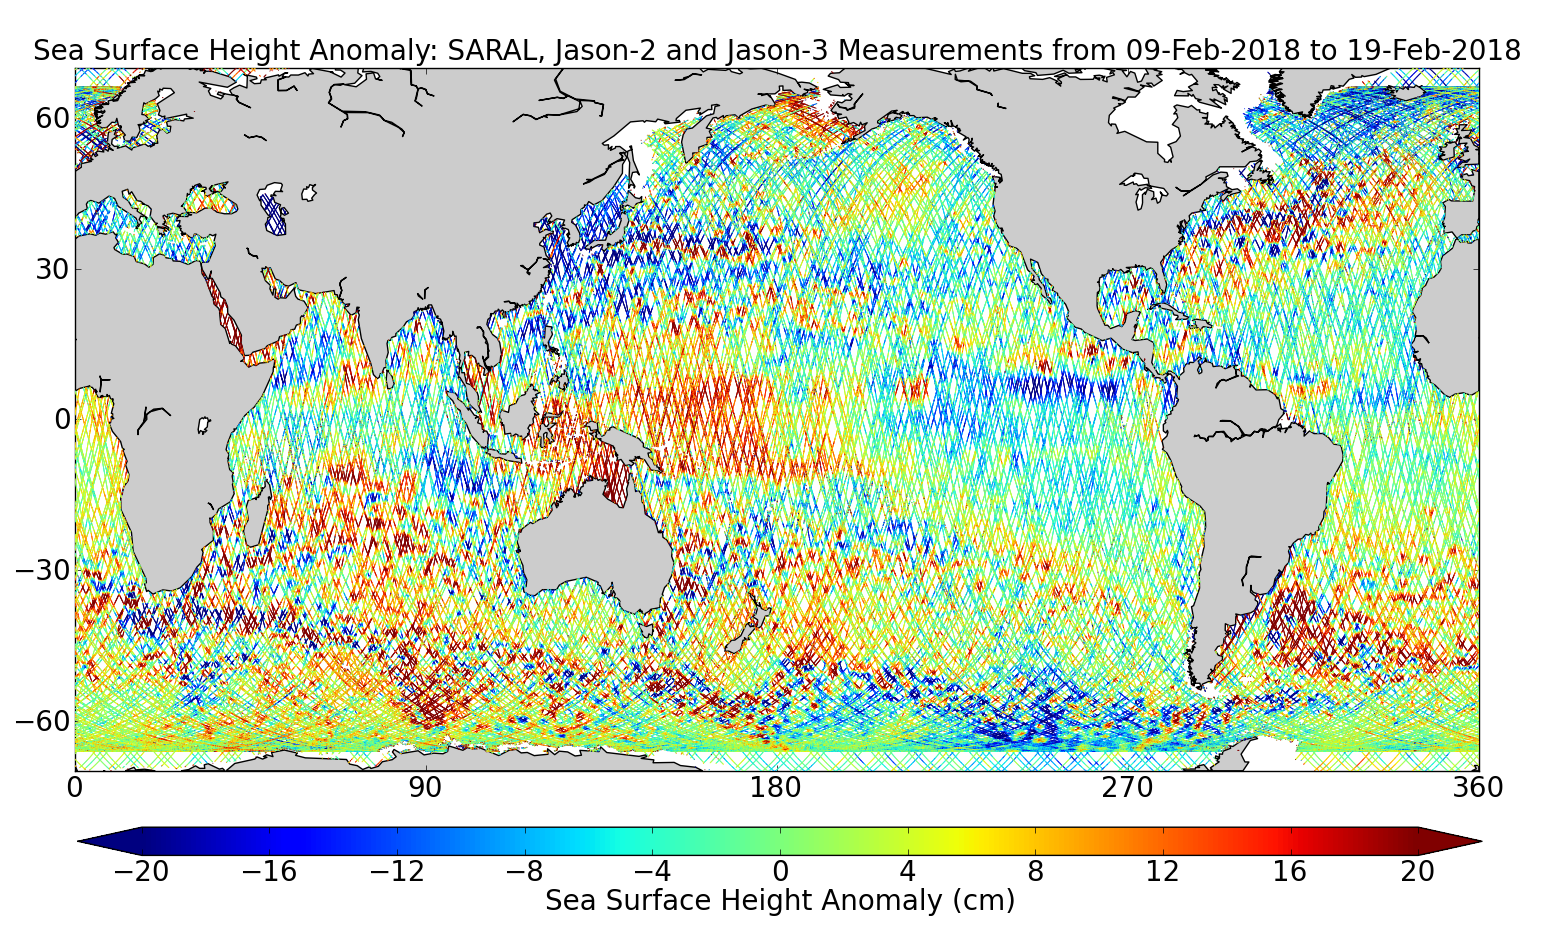 Sea Surface Height Anomaly: SARAL, Jason-2 and Jason-3 Measurements from 09-Feb-2018 to 19-Feb-2018